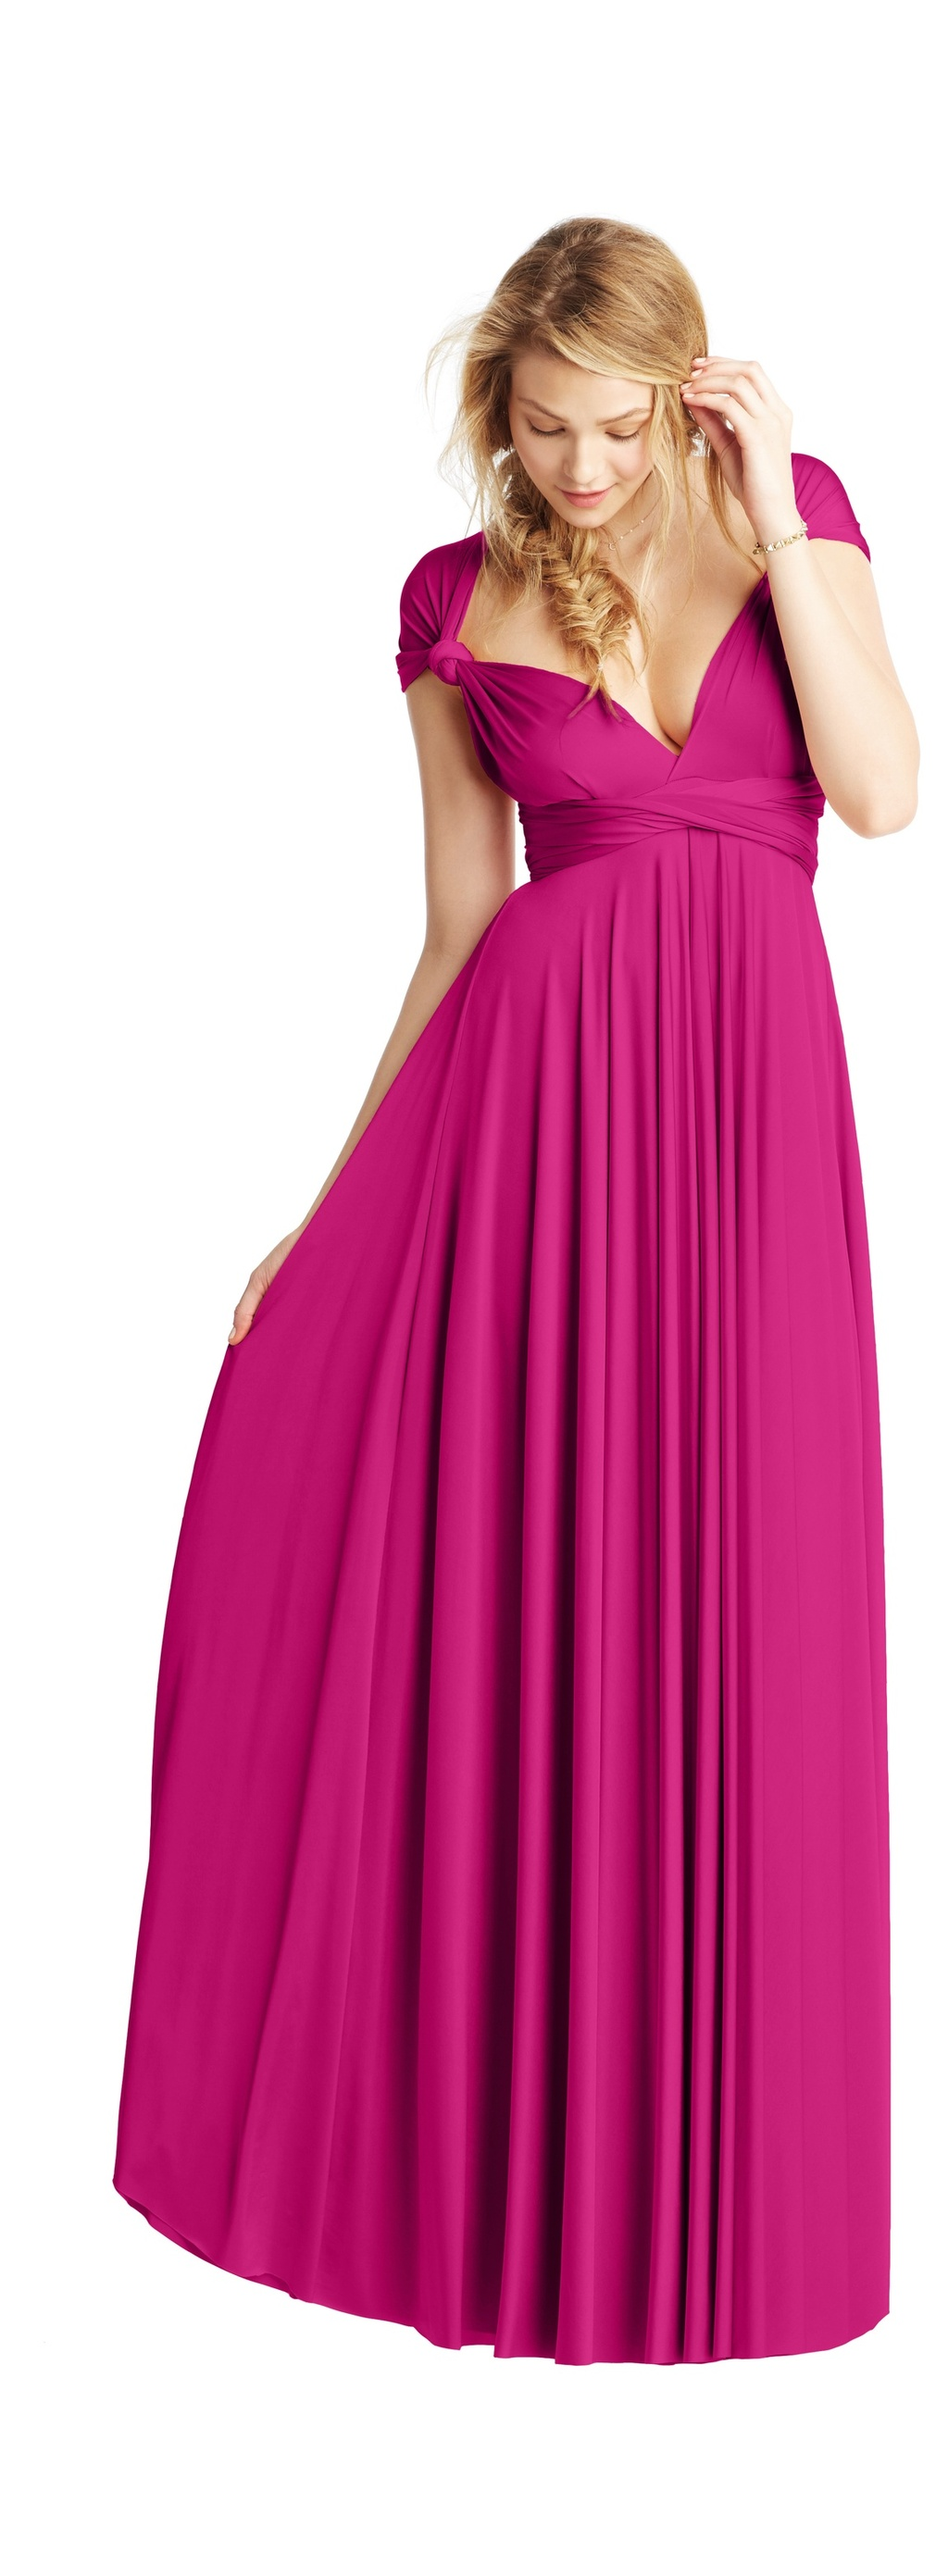 Two Birds Bridesmaid Dress 2013 Weddings deep fuschia